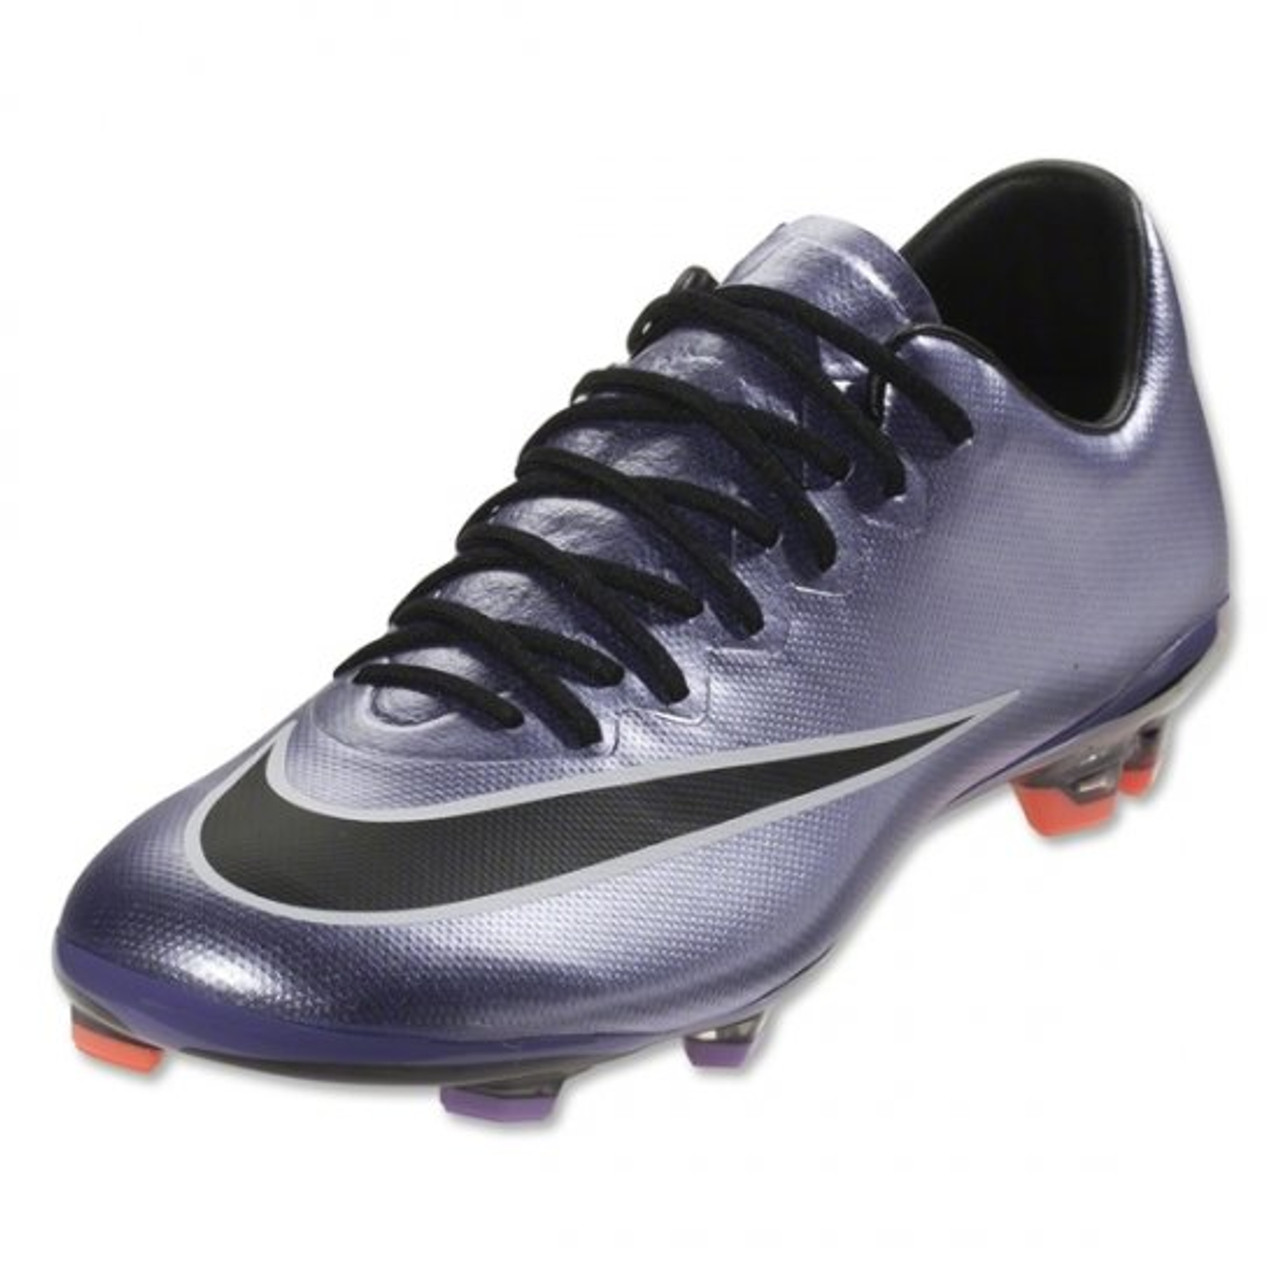 newest d8a5f 9cdf8 Nike Jr Mercurial Vapor X FG - Urban Lilac/Bright Mango/Black RC (10518)